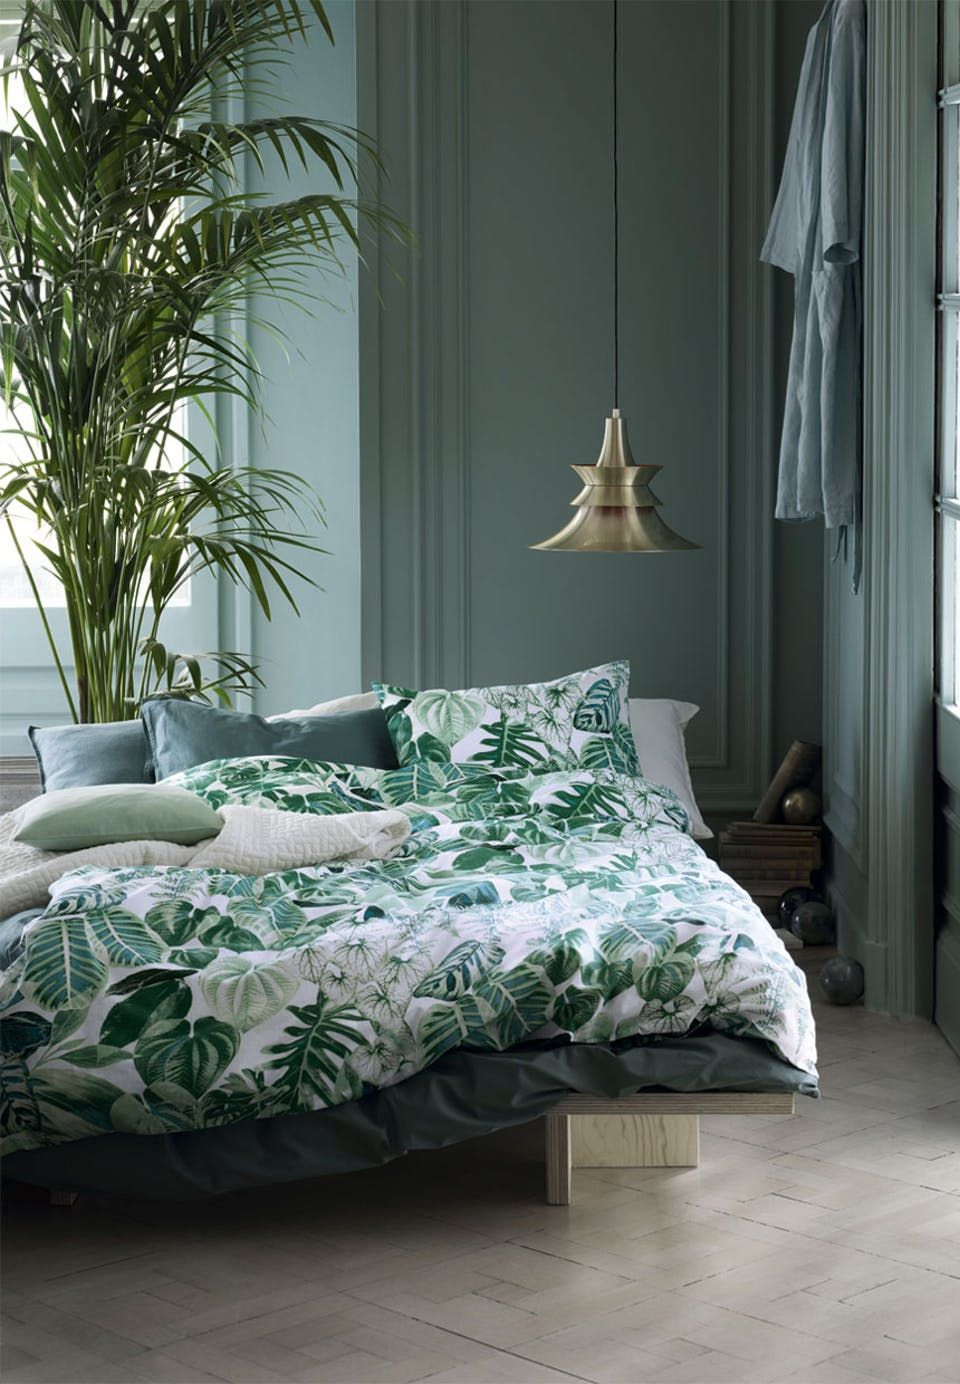 Botanical Bedroom In Beautiful Green Colours With Patterned Bedding